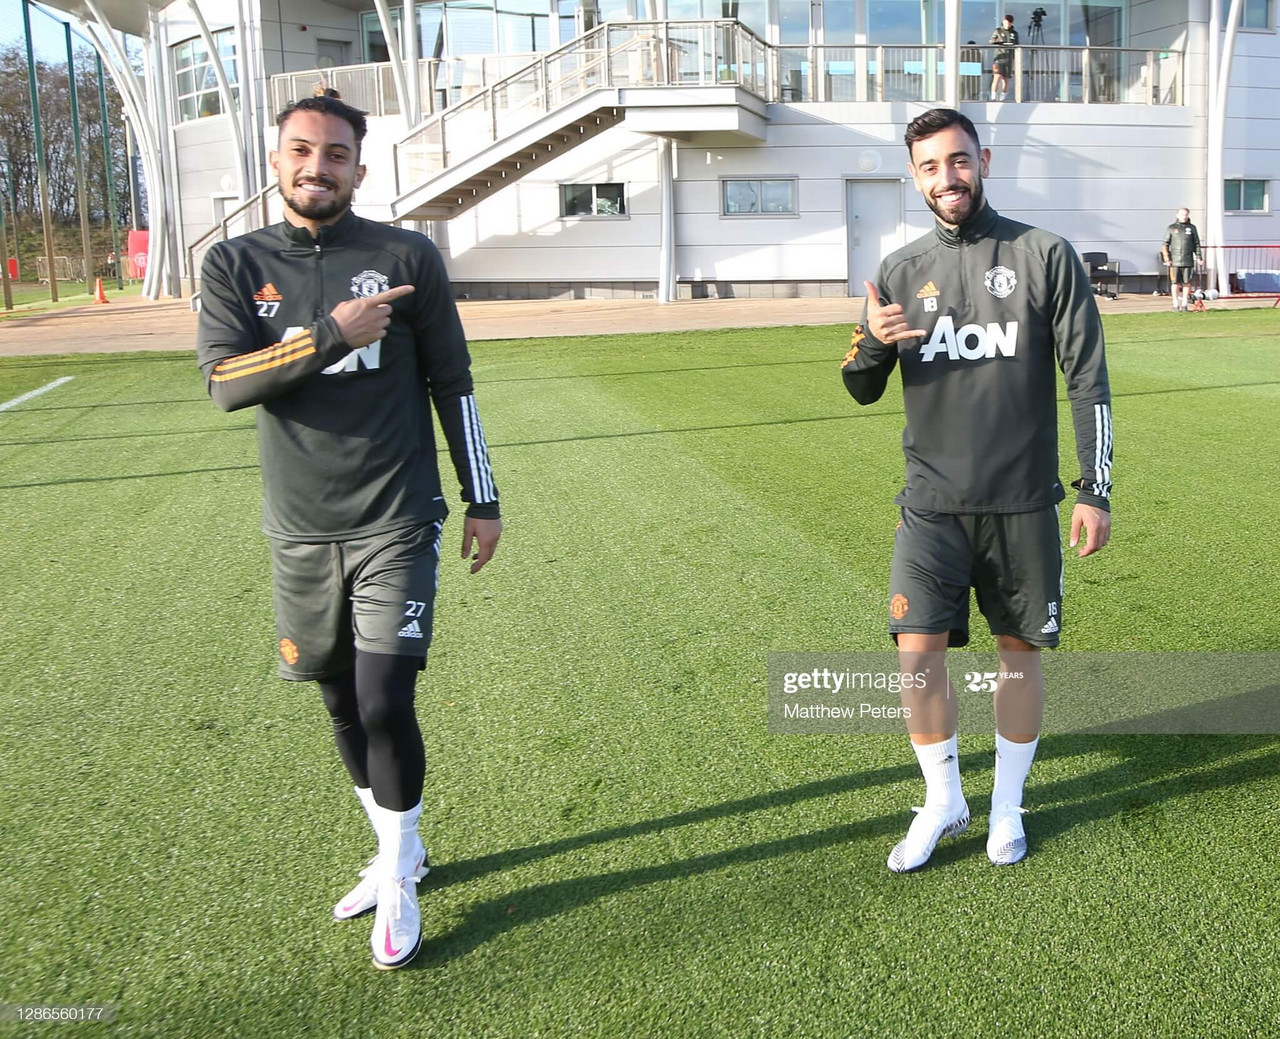 MANCHESTER, ENGLAND - NOVEMBER 19: (EXCLUSIVE COVERAGE) Bruno Fernandes and Alex Telles of Manchester United in action during a first team training session at Aon Training Complex on November 19, 2020 in Manchester, England. (Photo by Matthew Peters/Manchester United via Getty Images)